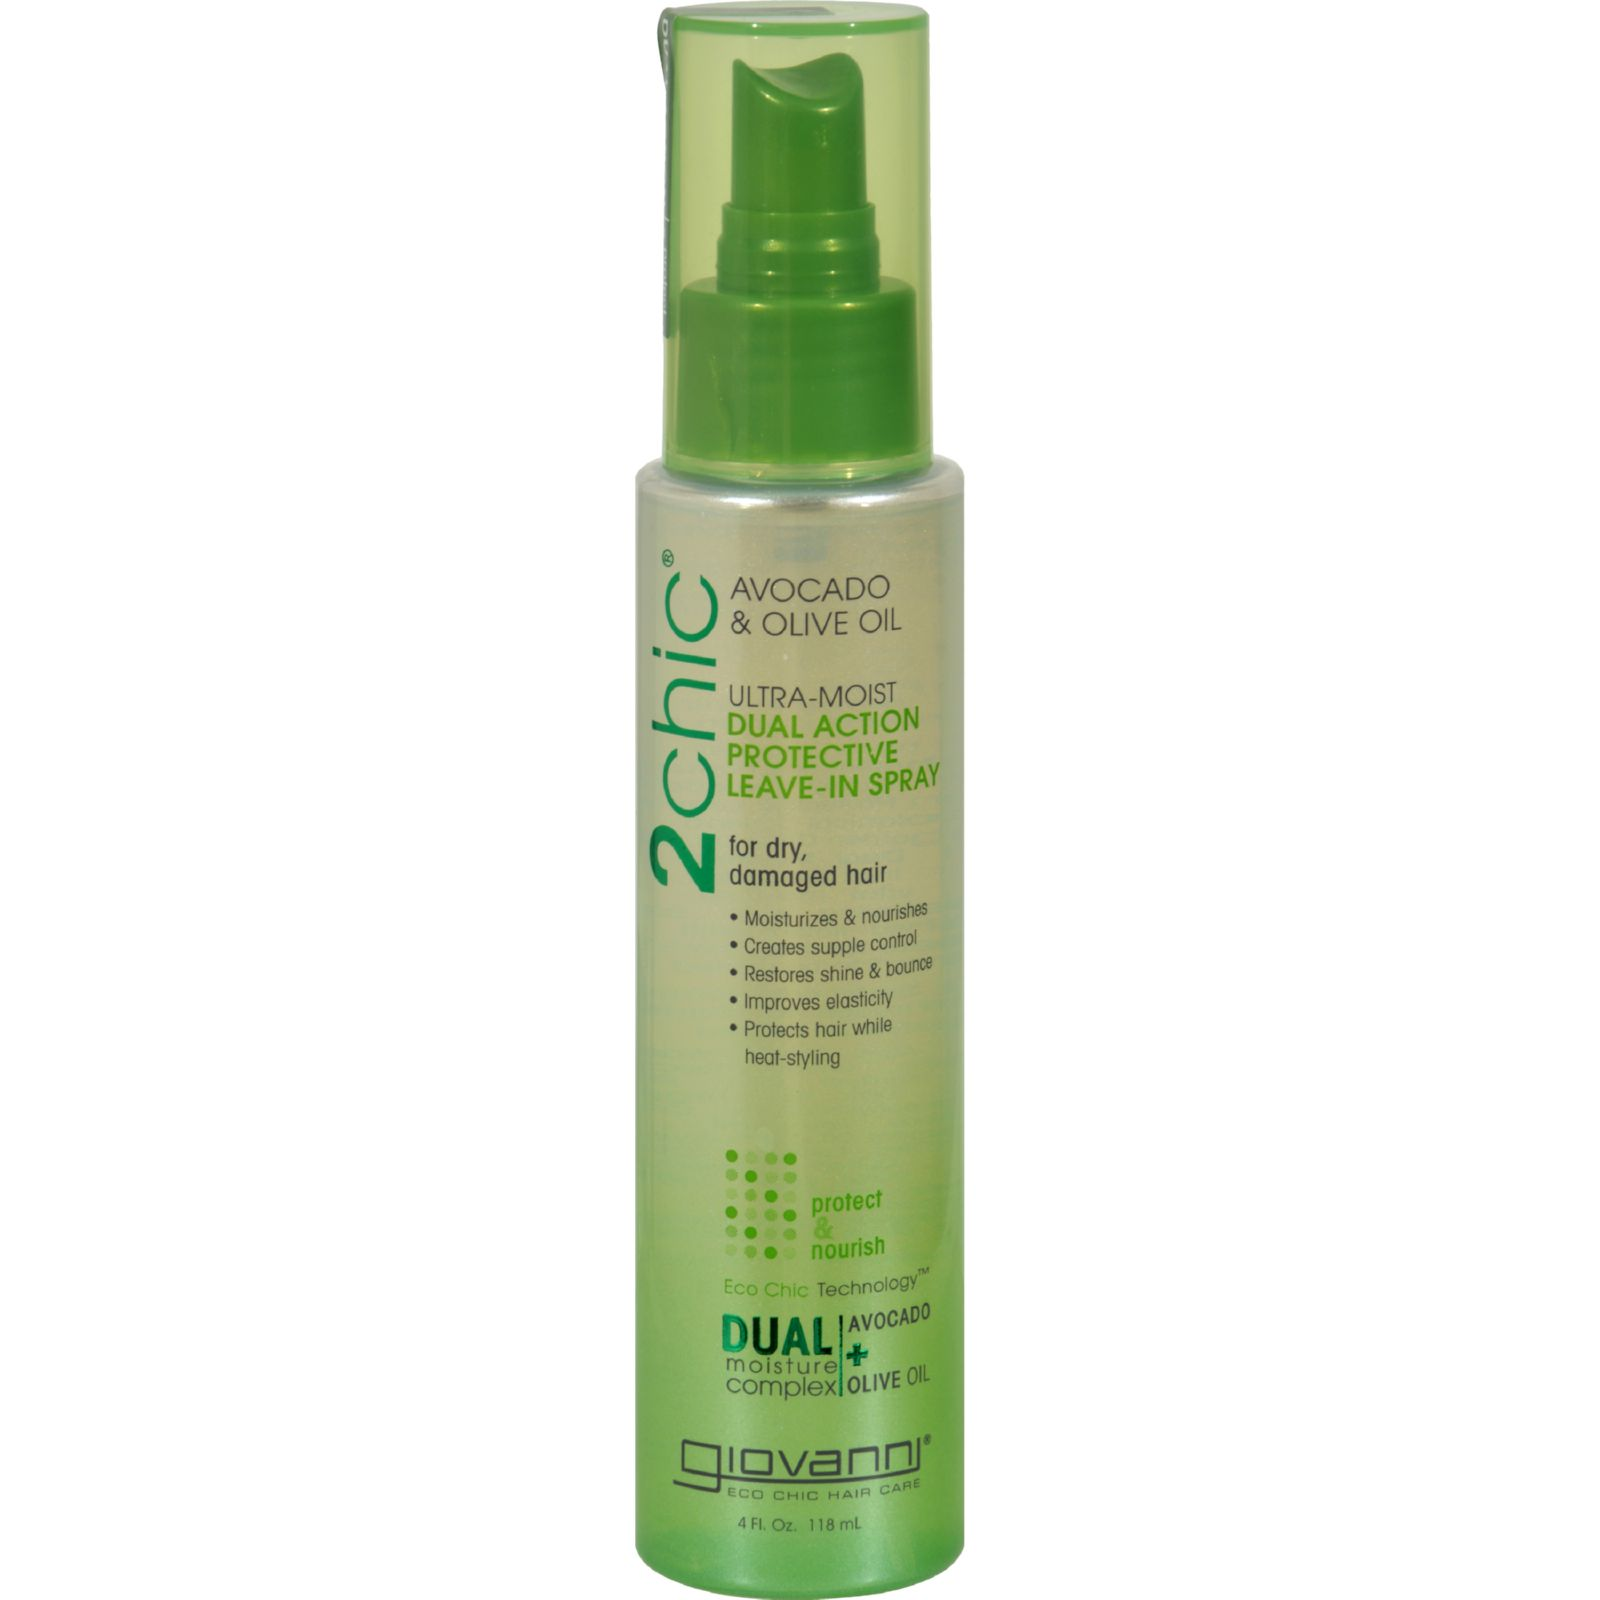 Giovanni Hair Care Products Spray Leave In Conditioner  2Chic Avocado  4 oz